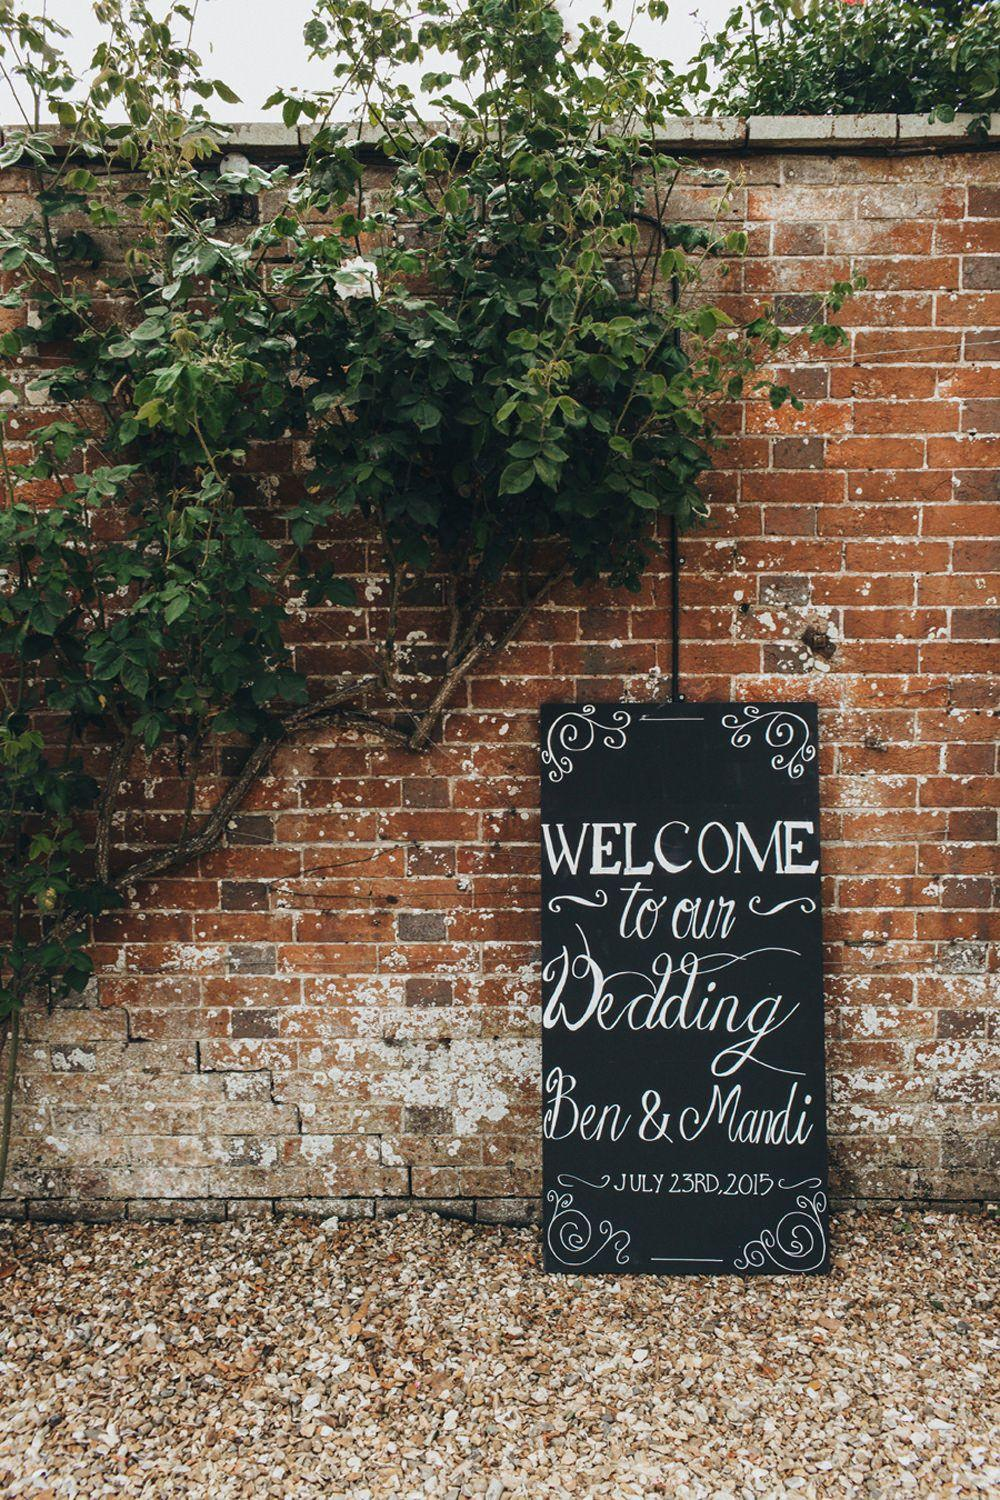 Simple Wedding Decorating: 95 Smashing Ideas to Be Inspired 25